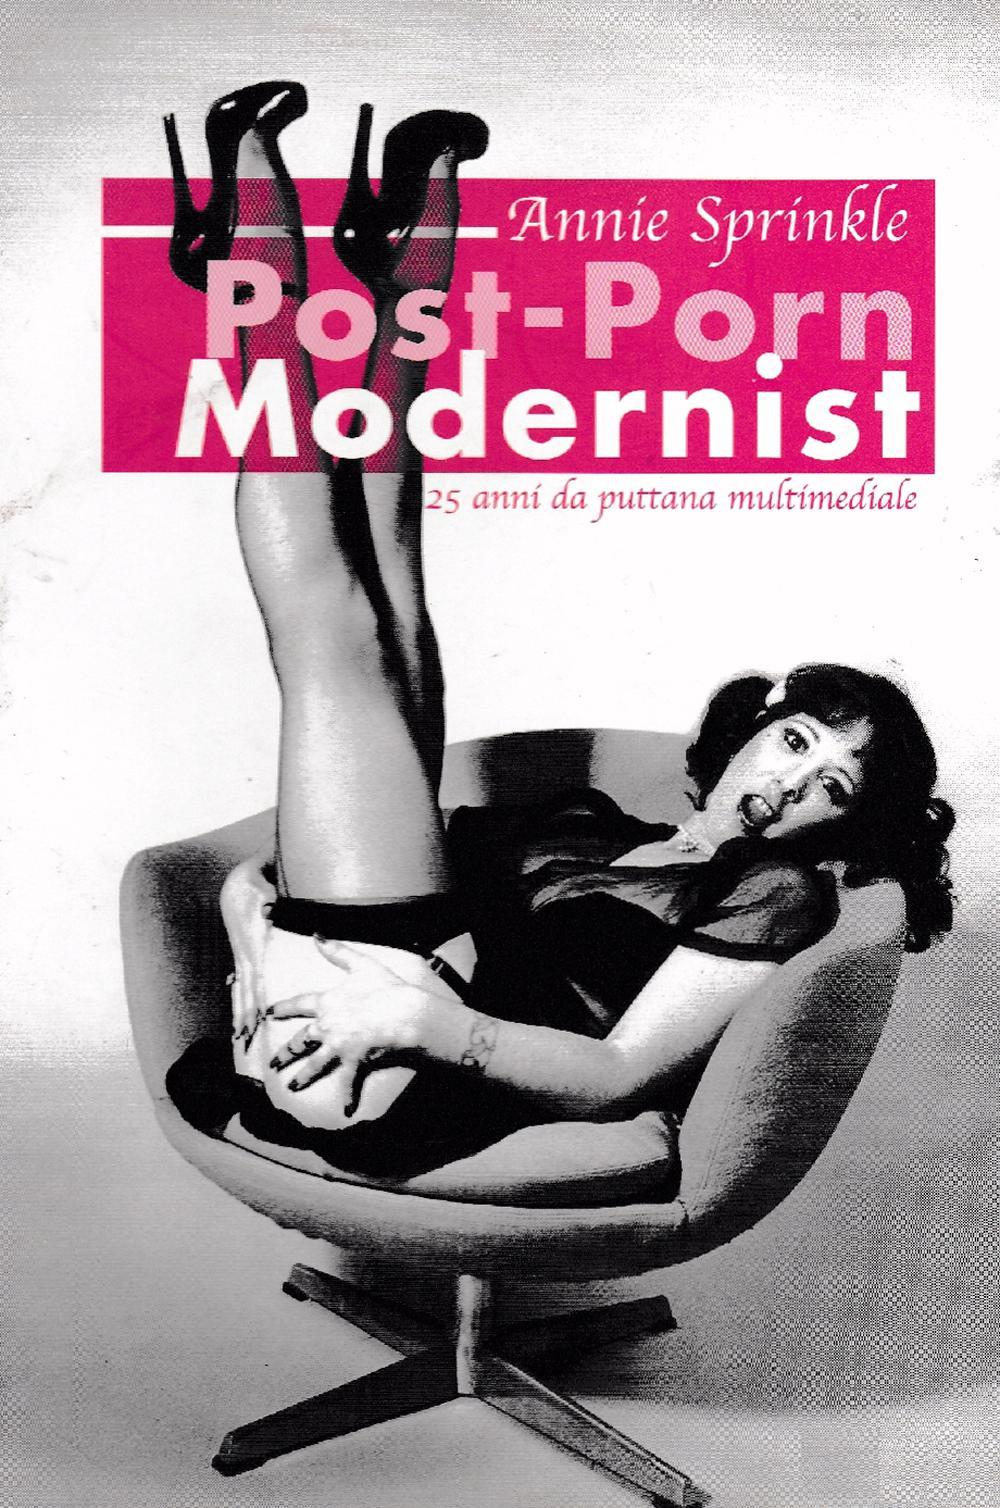 Post-Porn Modernist